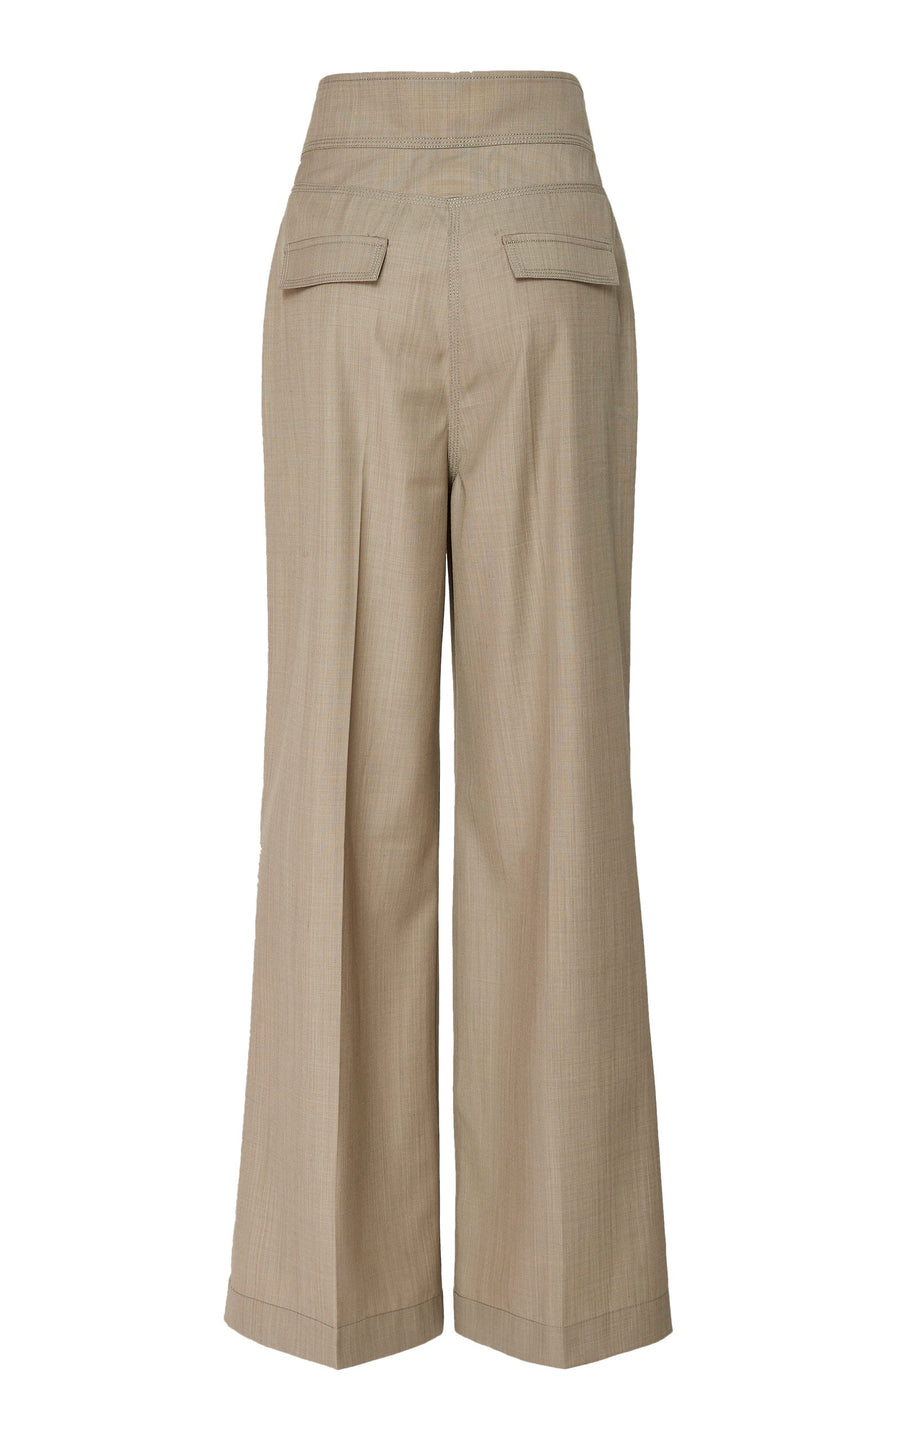 Acler Acton Pants